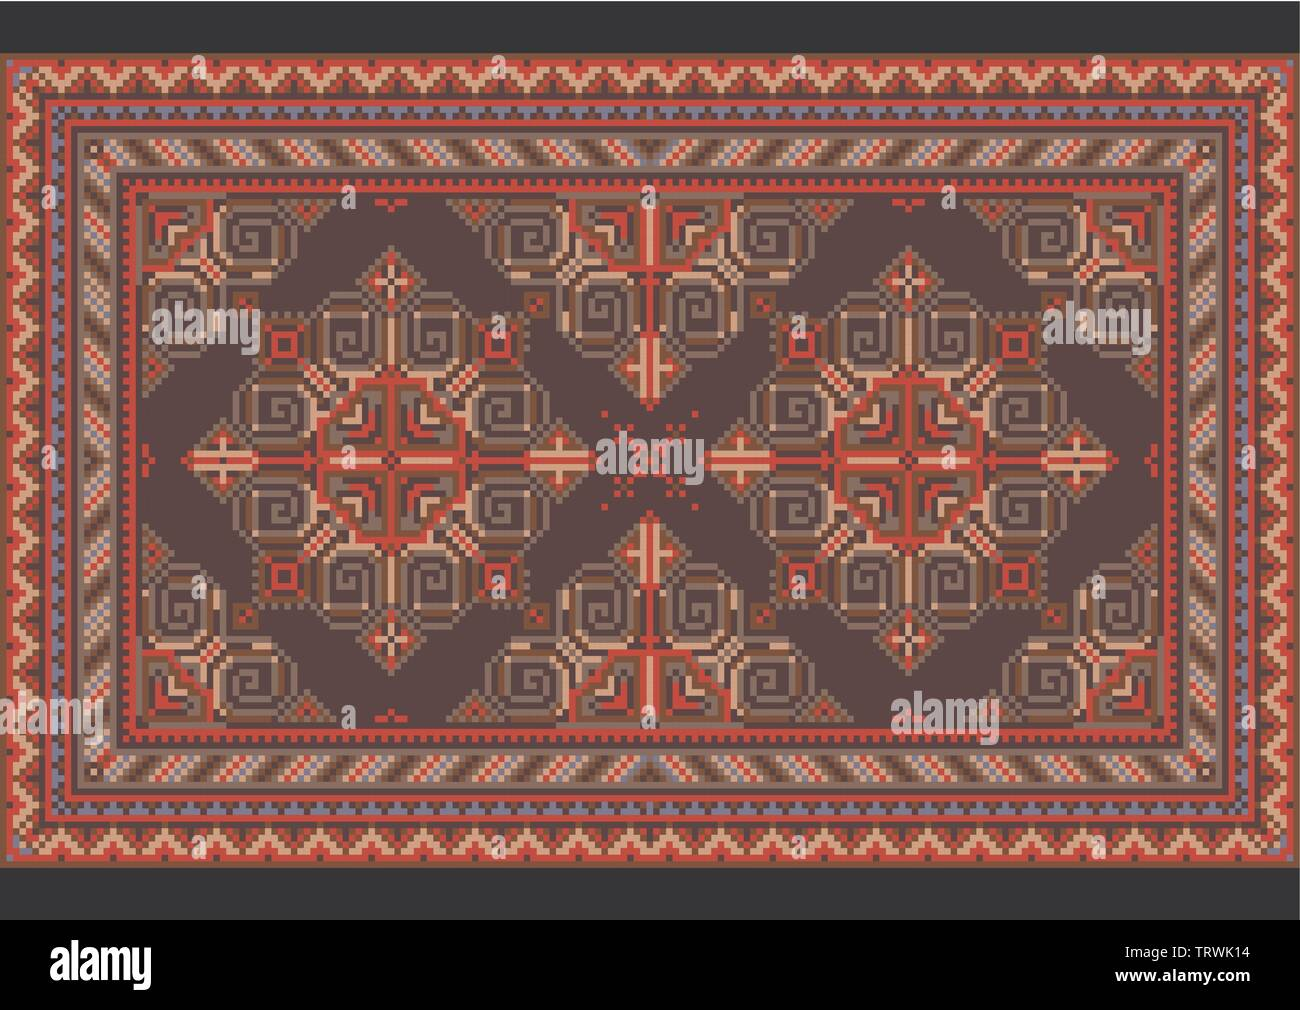 Variegated luxury vintage oriental carpet with red, blue, gray and brown shades on black background - Stock Image